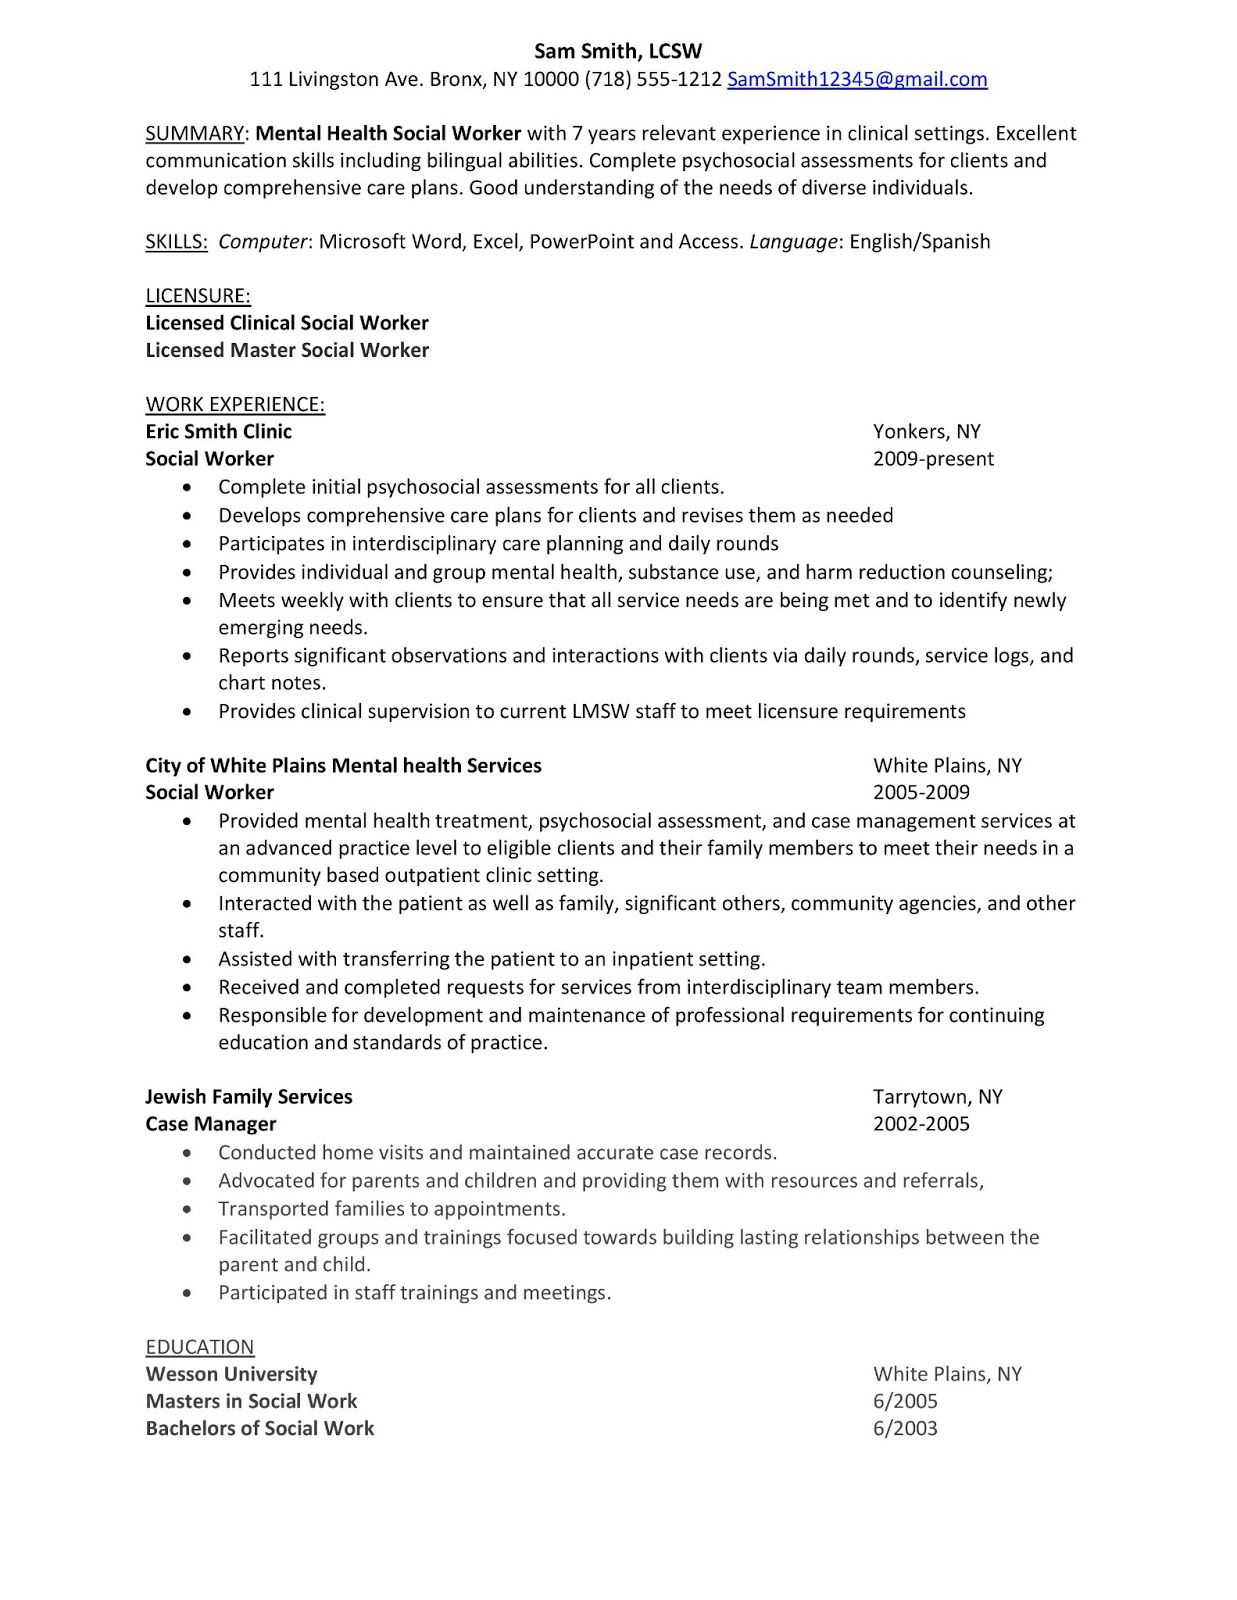 Medical Social Worker Resume Sample Resume Mental Health Social Worker Career Advice